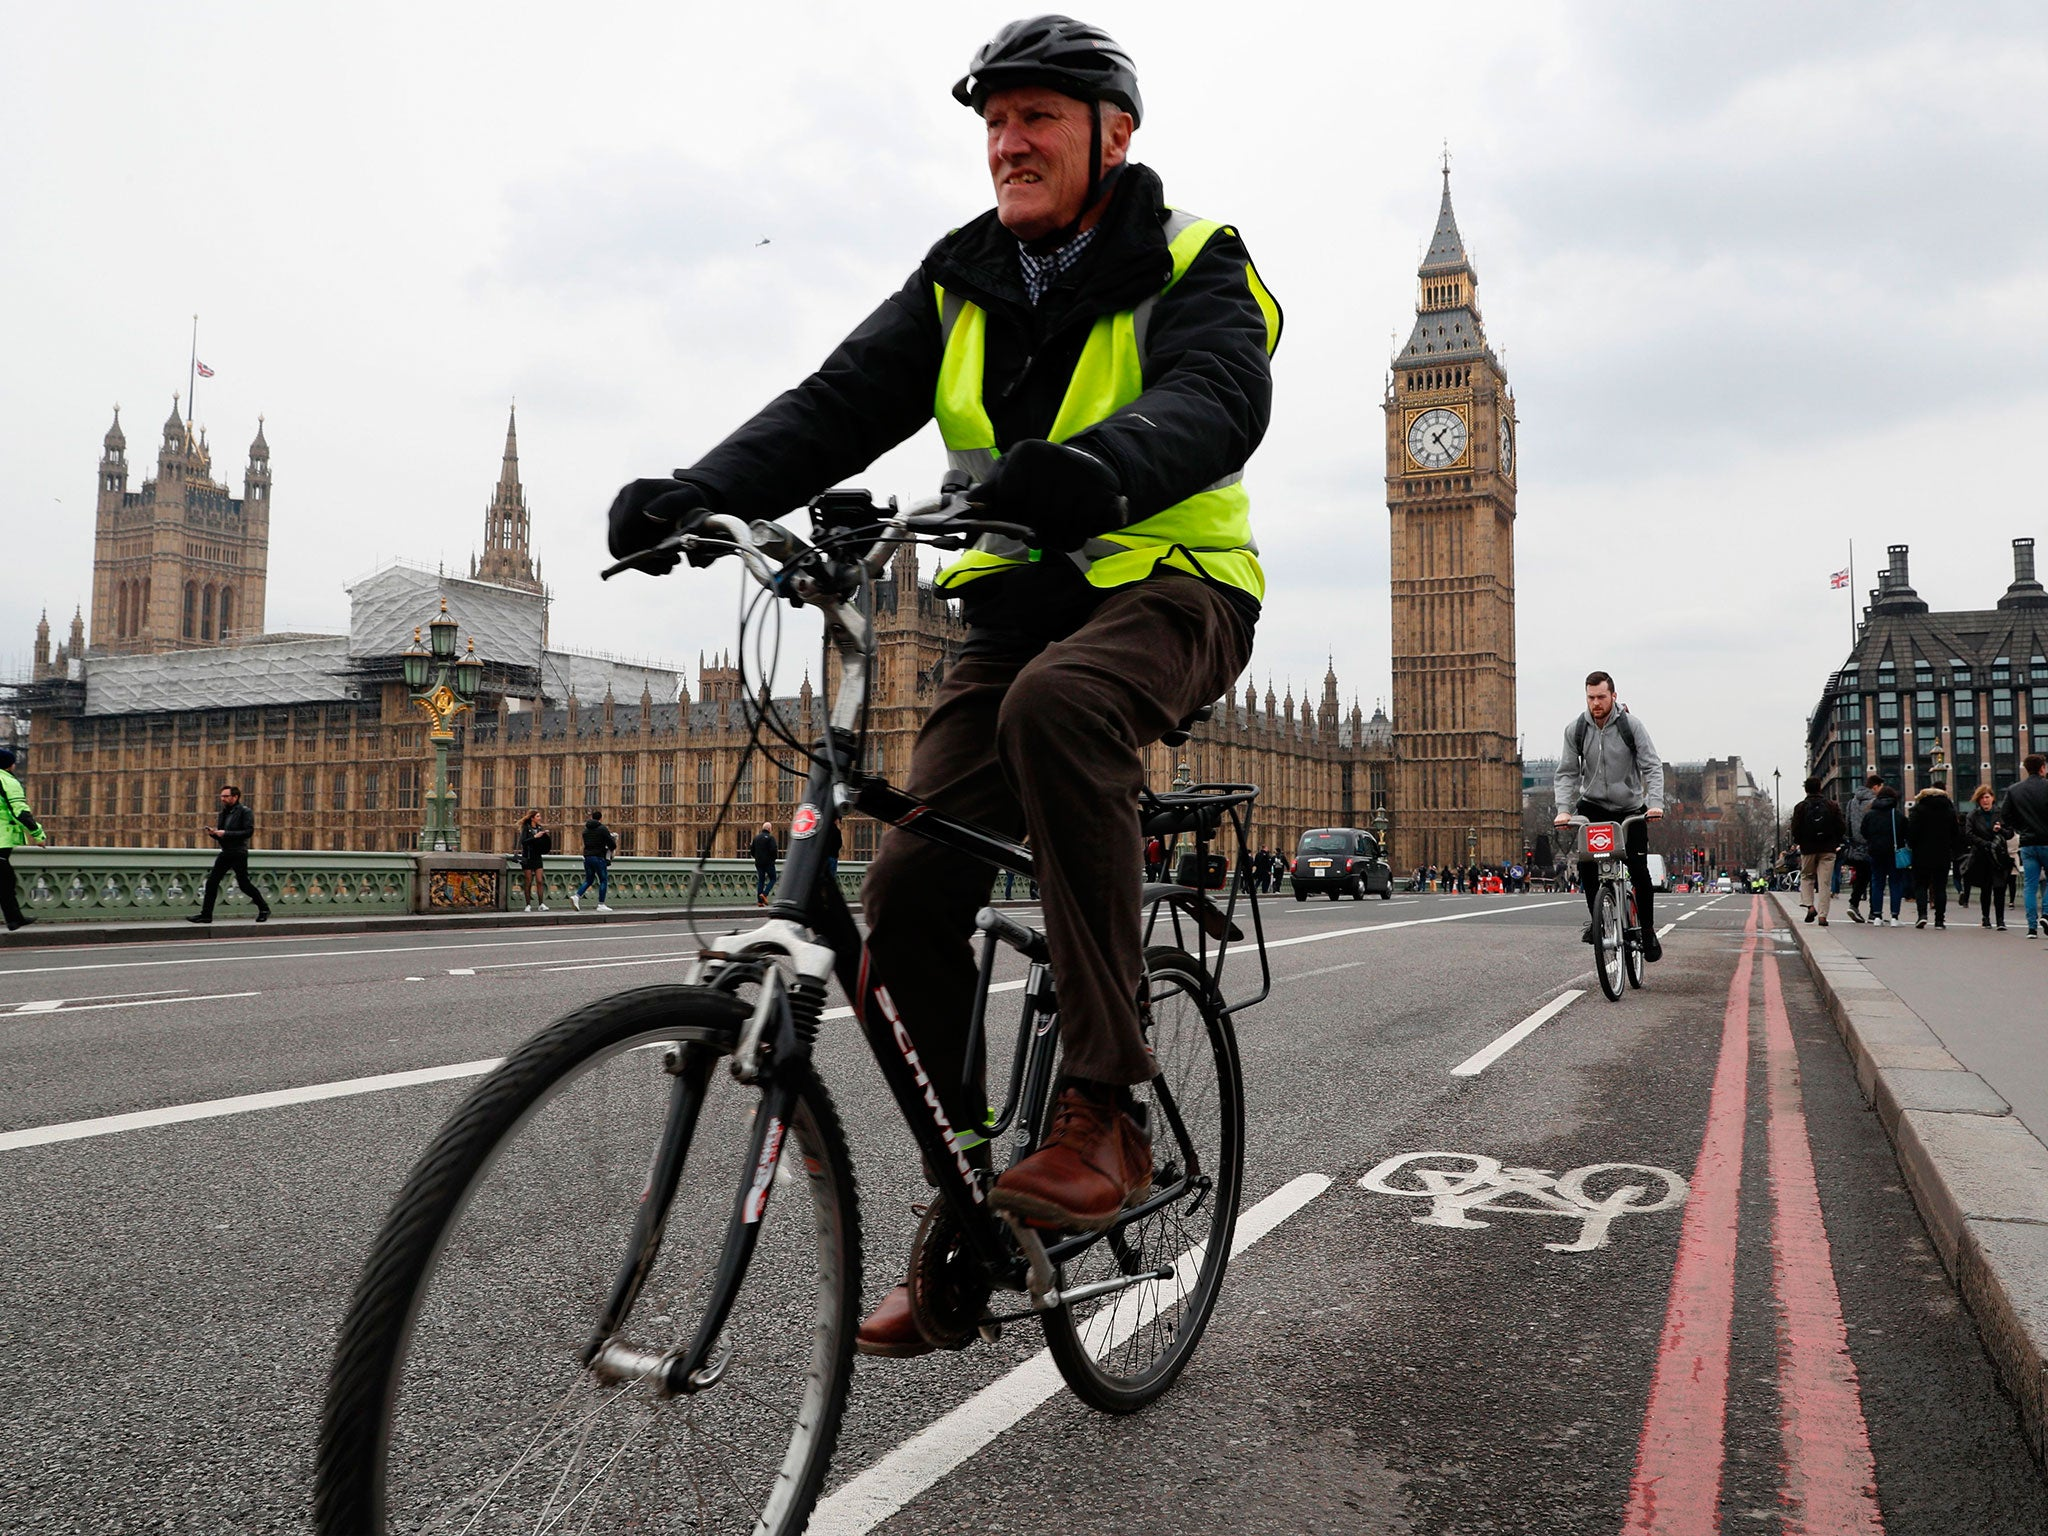 Chris Boardman - latest news, breaking stories and comment